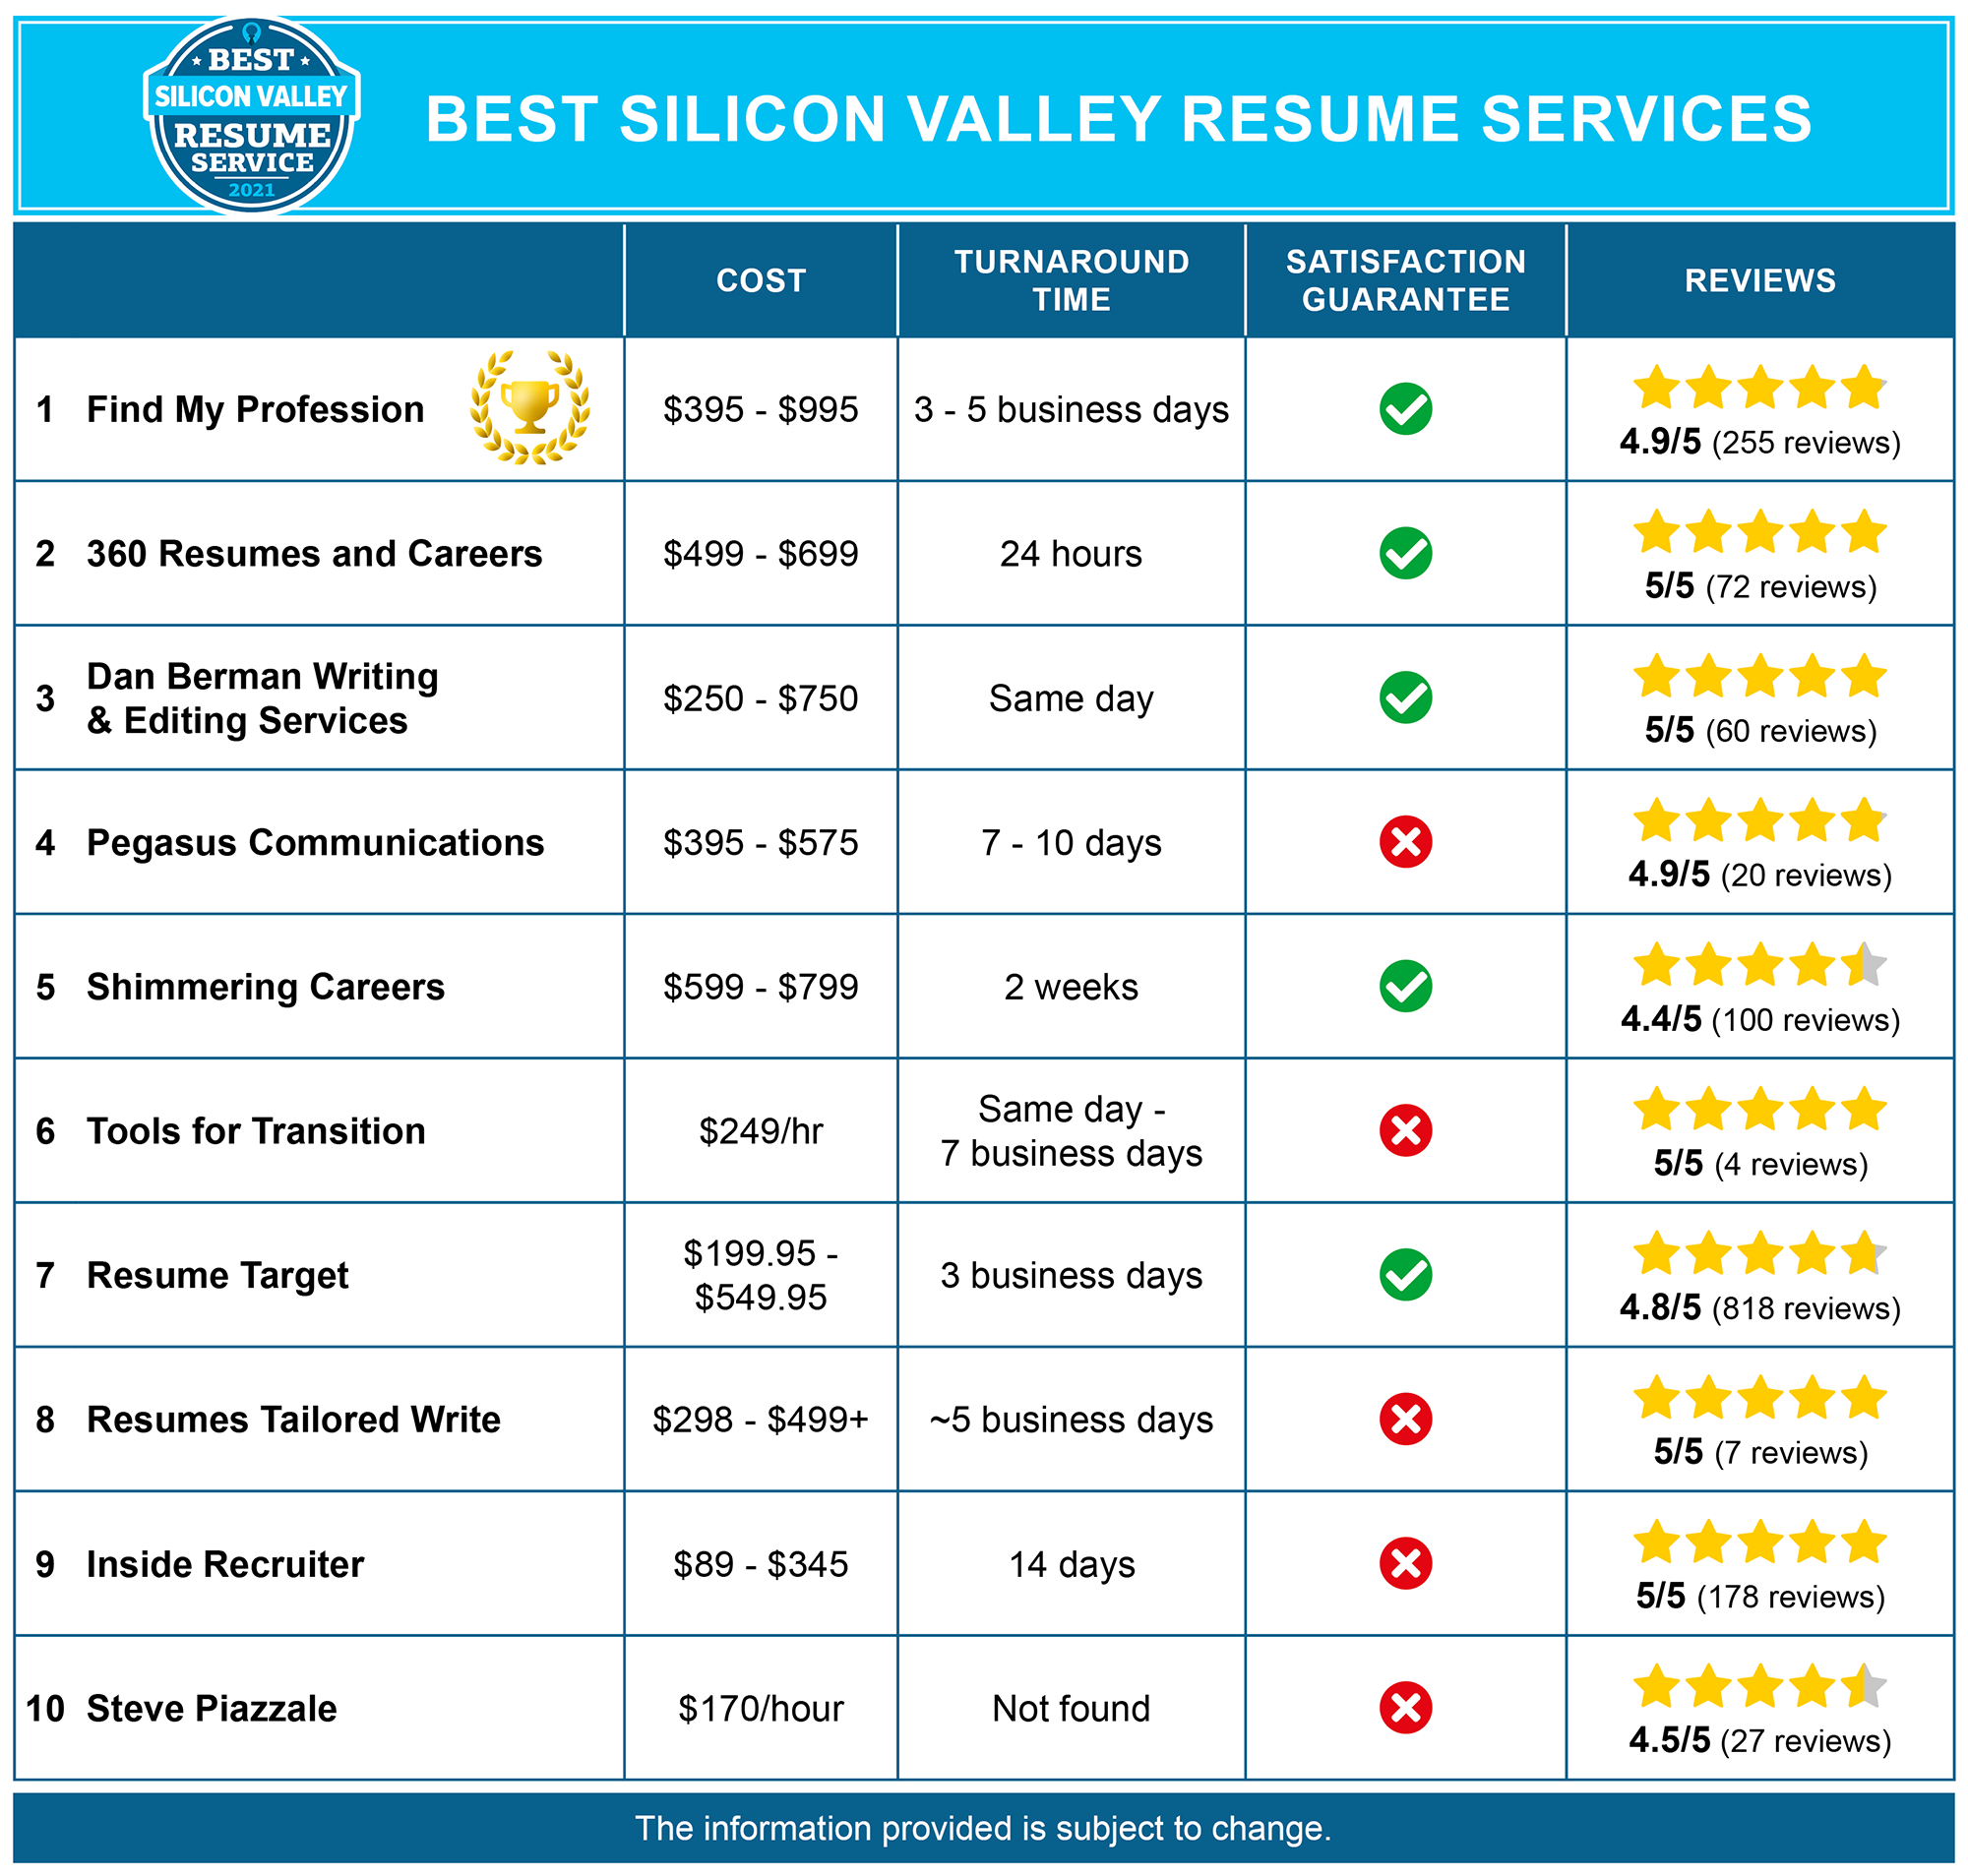 Best Silicon Valley Resume Services